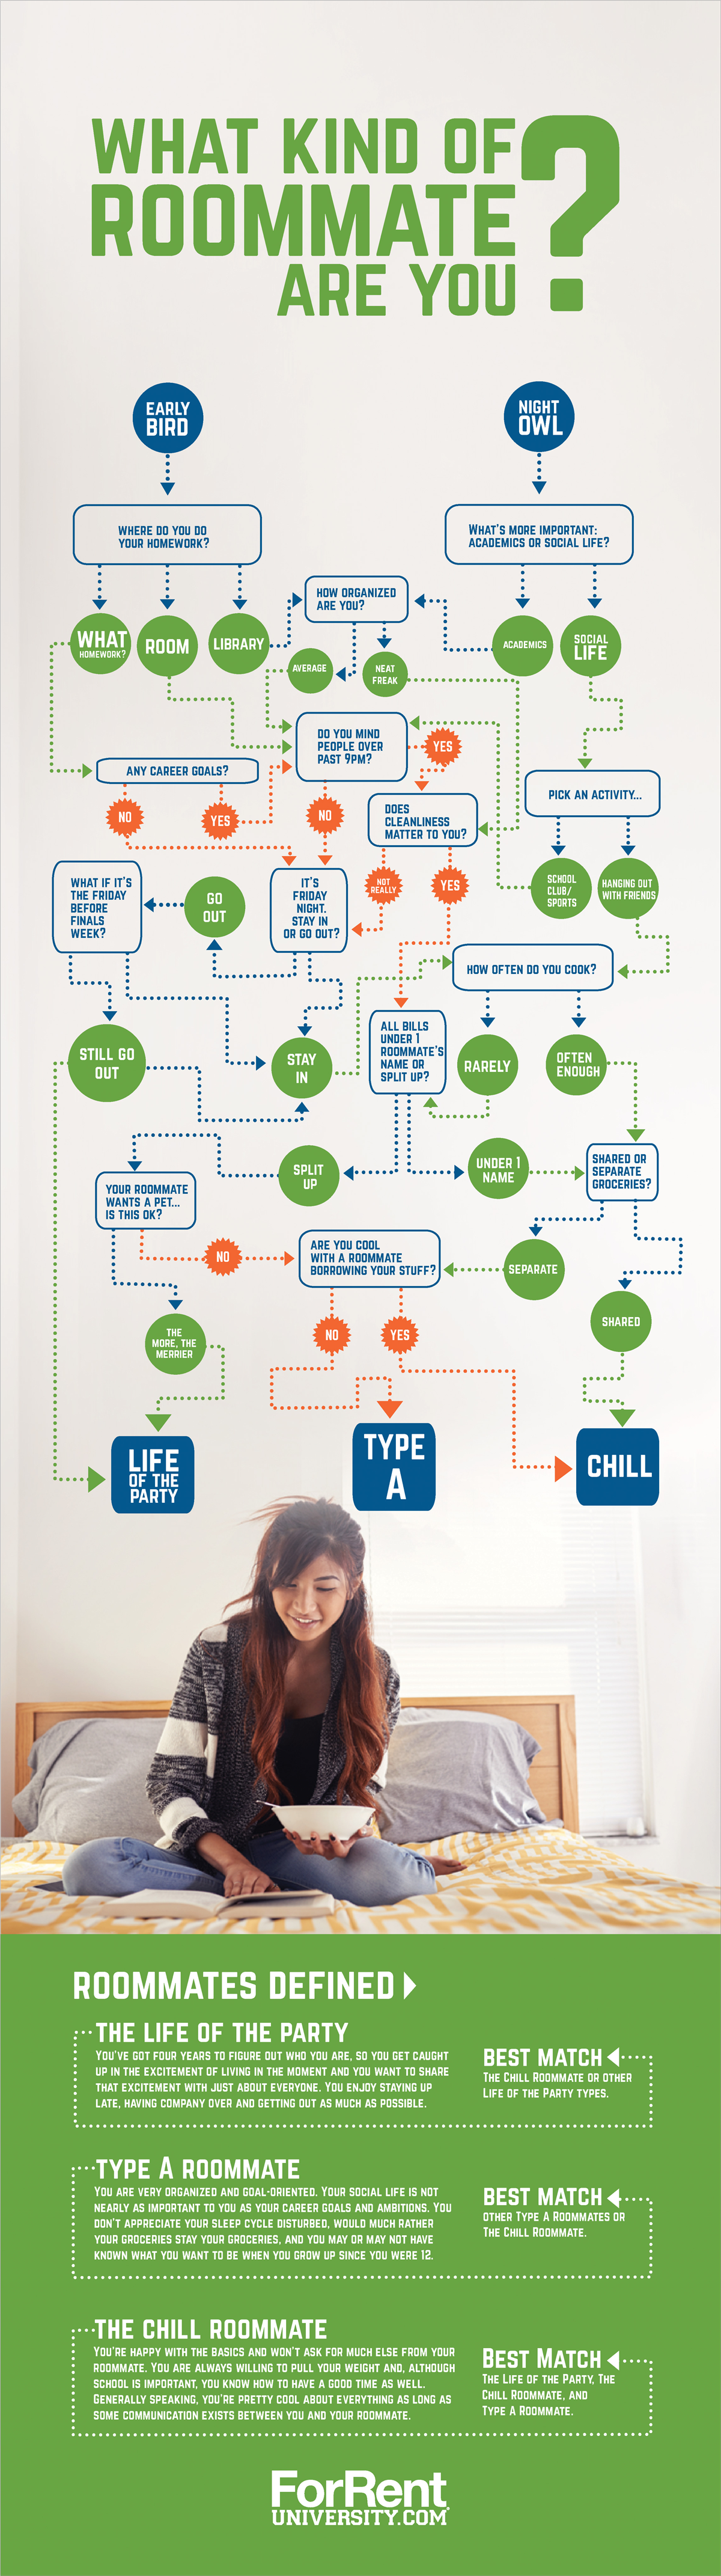 21-Creative-Flowchart-Examples-for-Making-Important-Life-Decisions-Offer-Tips-or-Suggestions